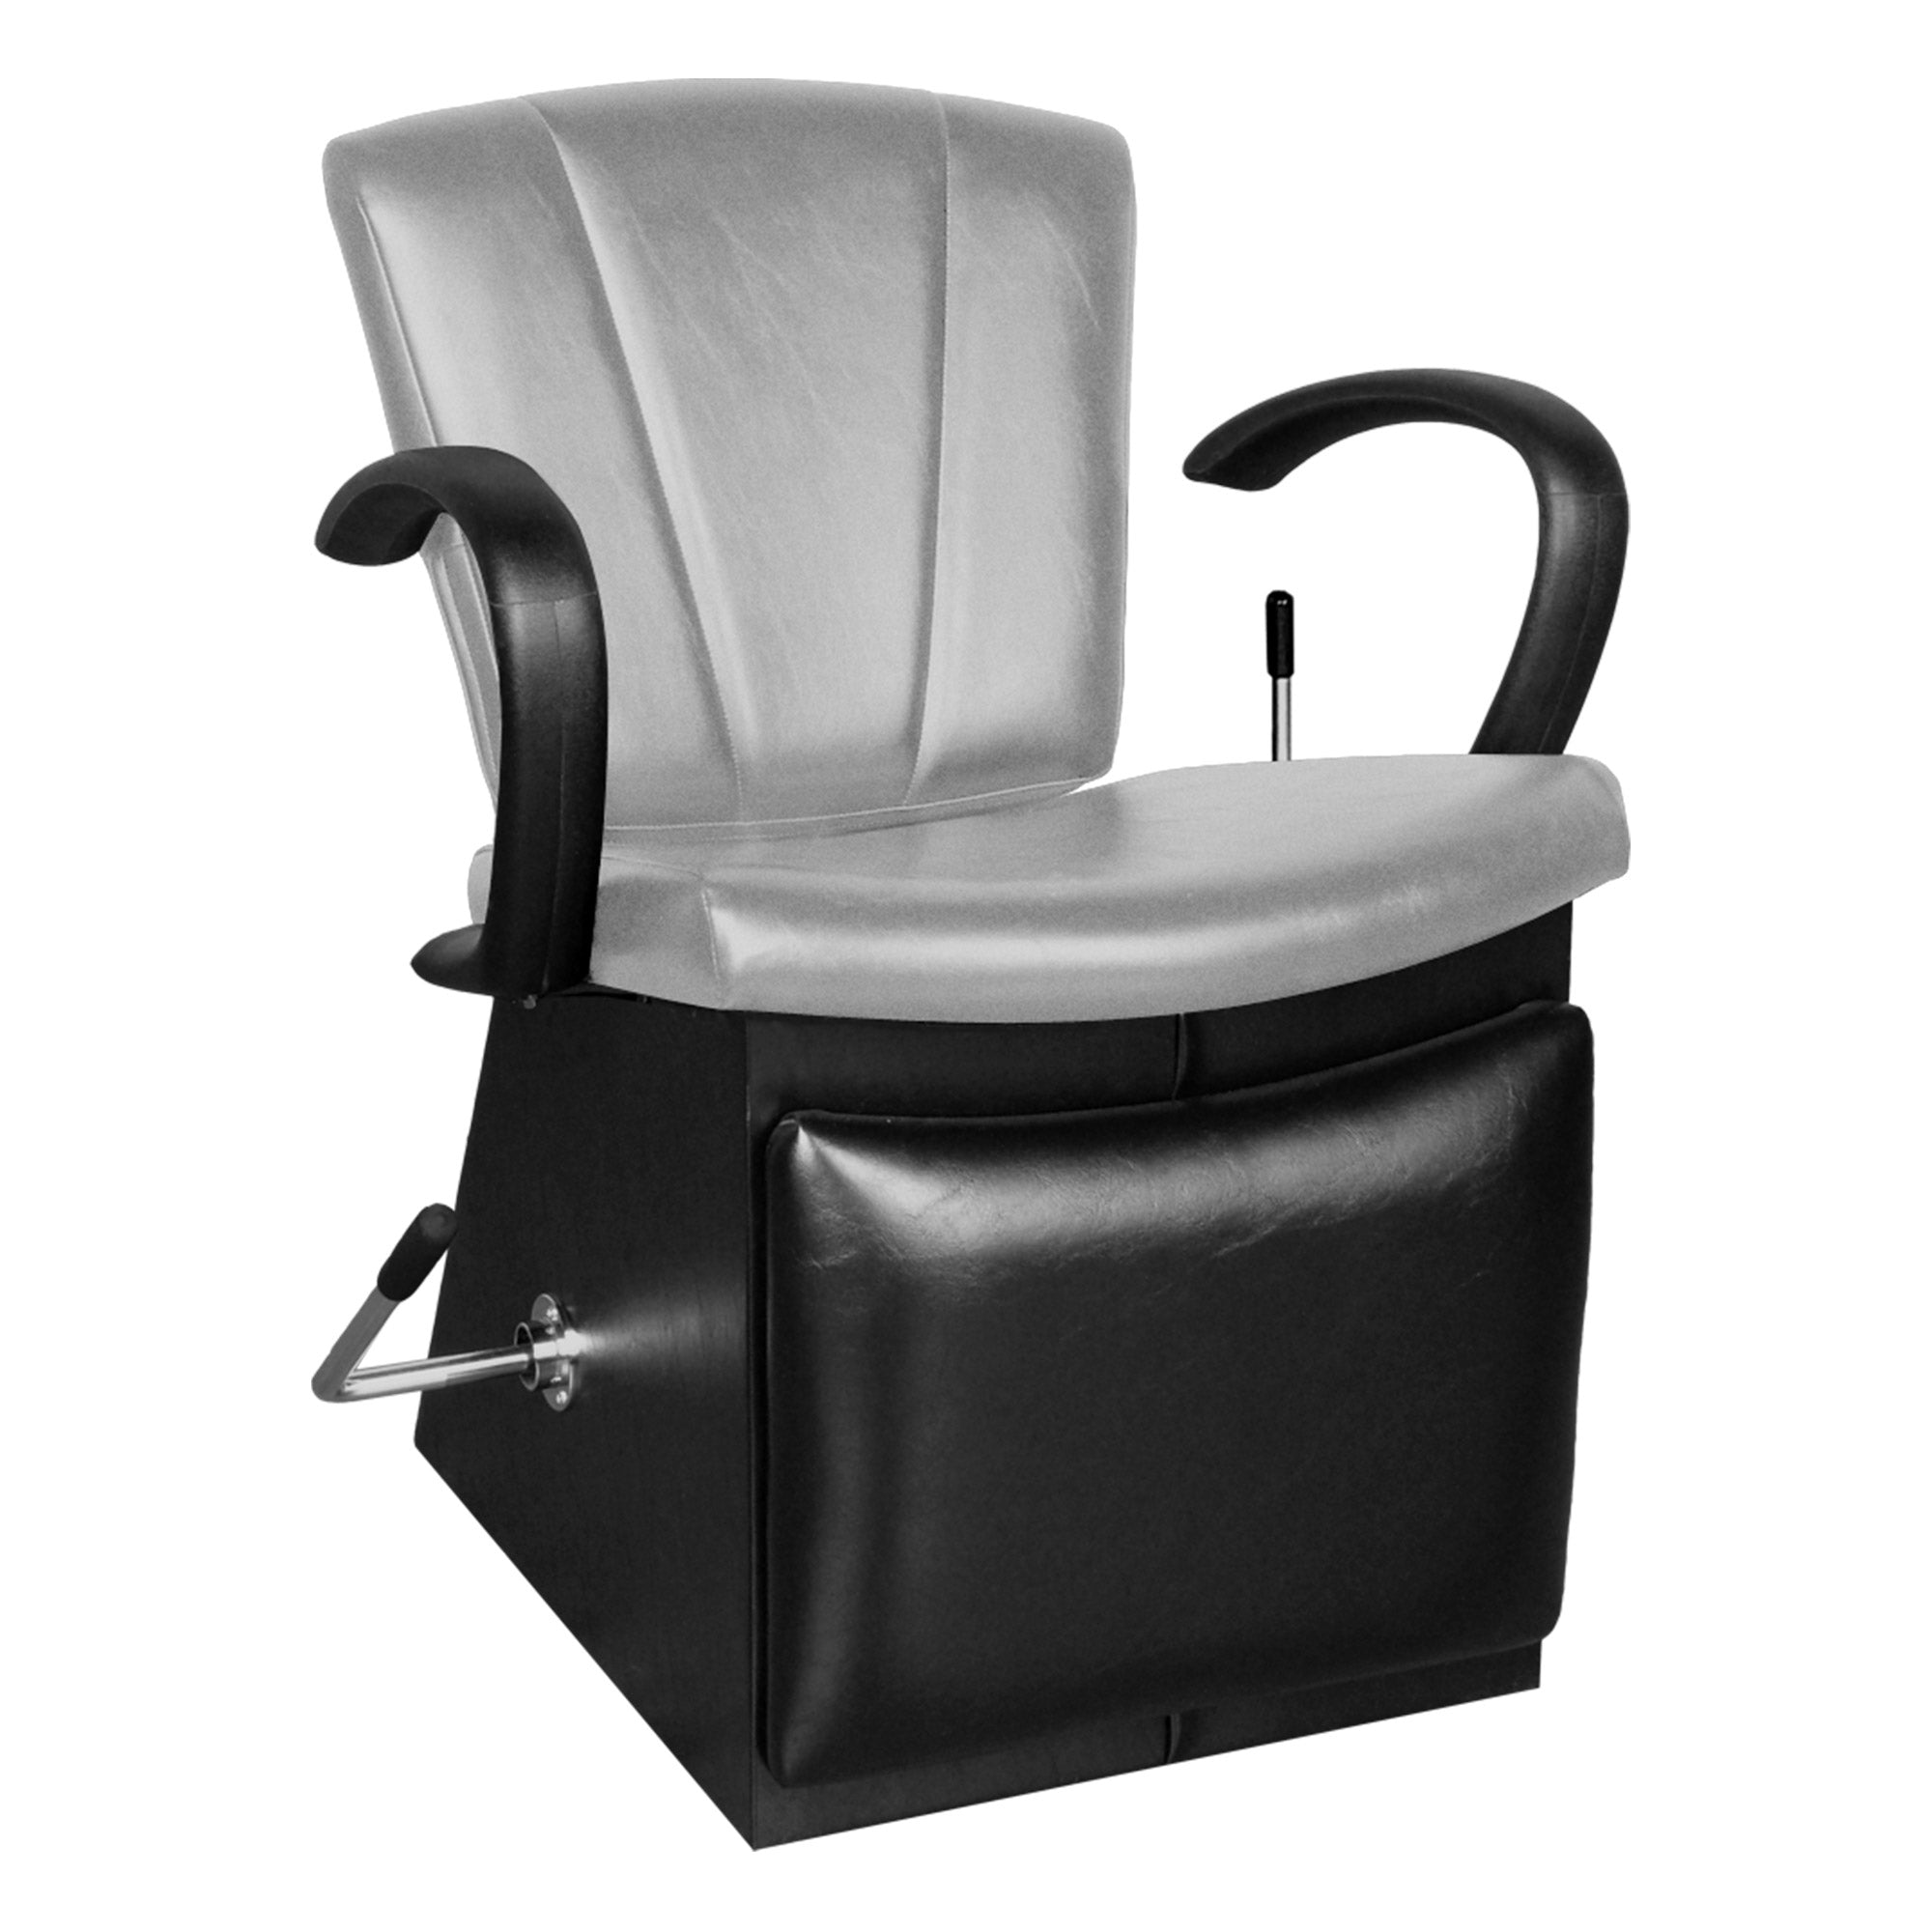 Sean Patrick Shampoo Chair with Legrest